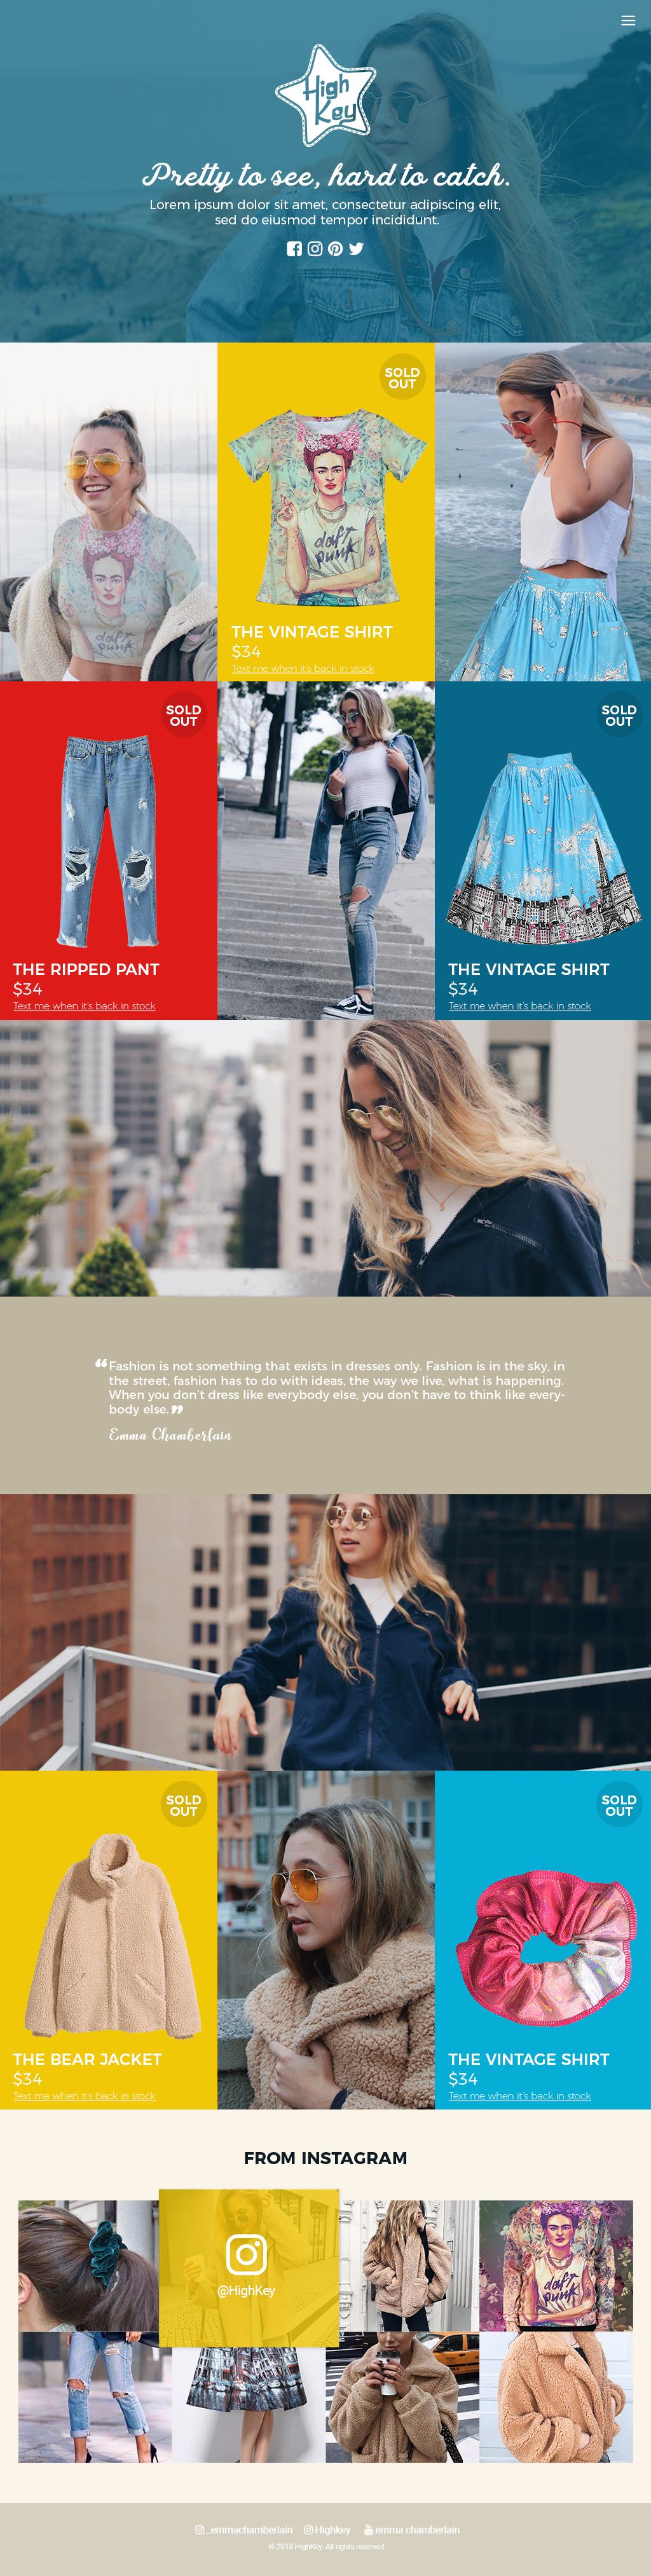 New young women's clothing brand needs a fun, colorful & retro website